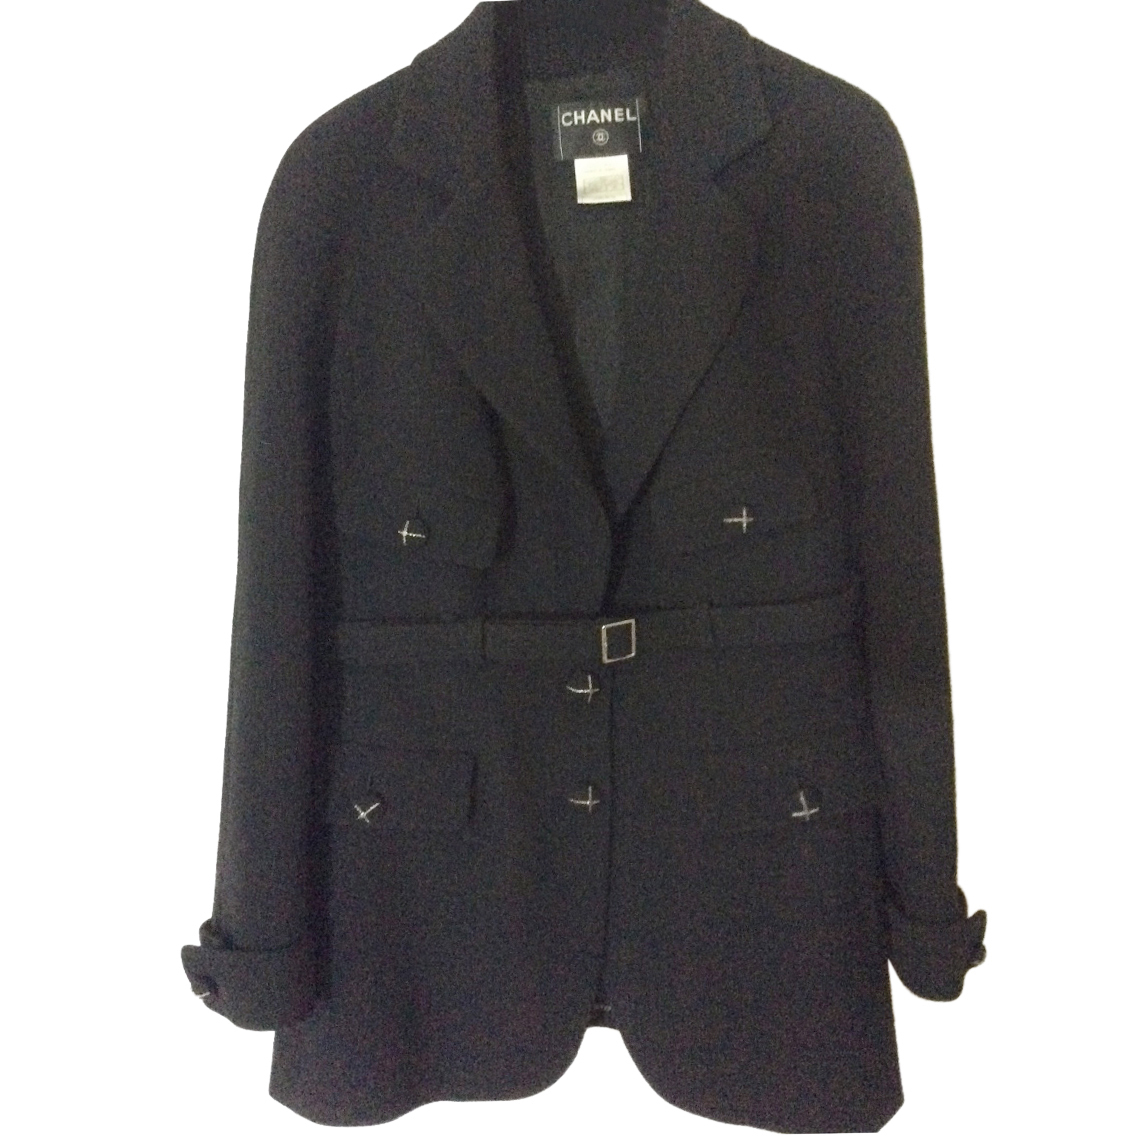 Chanel classic black belted jacket